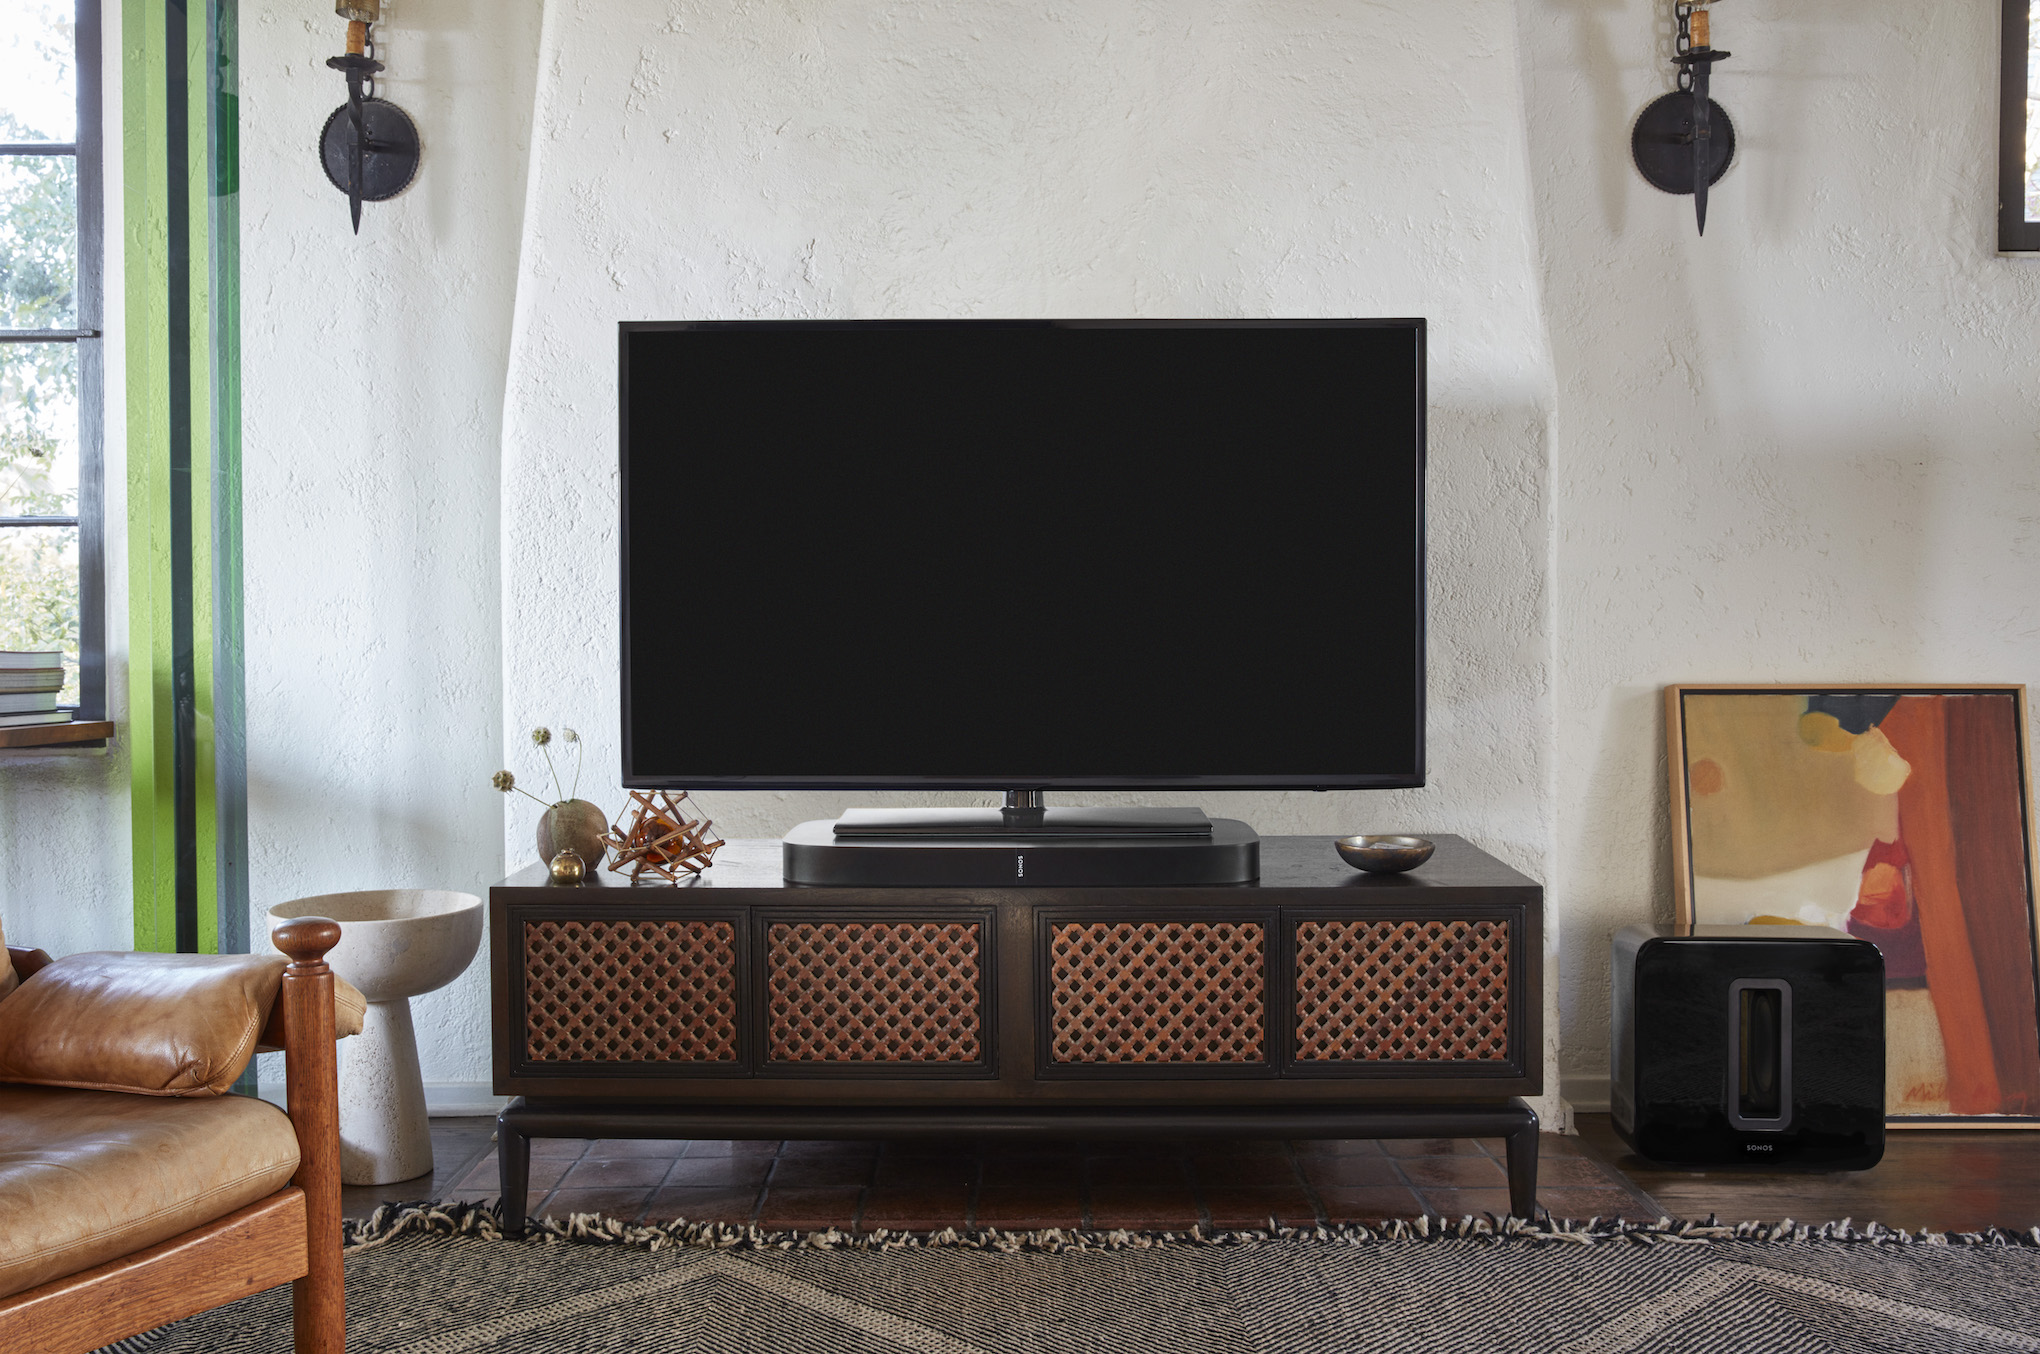 Sonos Debuts New 'PLAYBASE' Home Theater Speaker